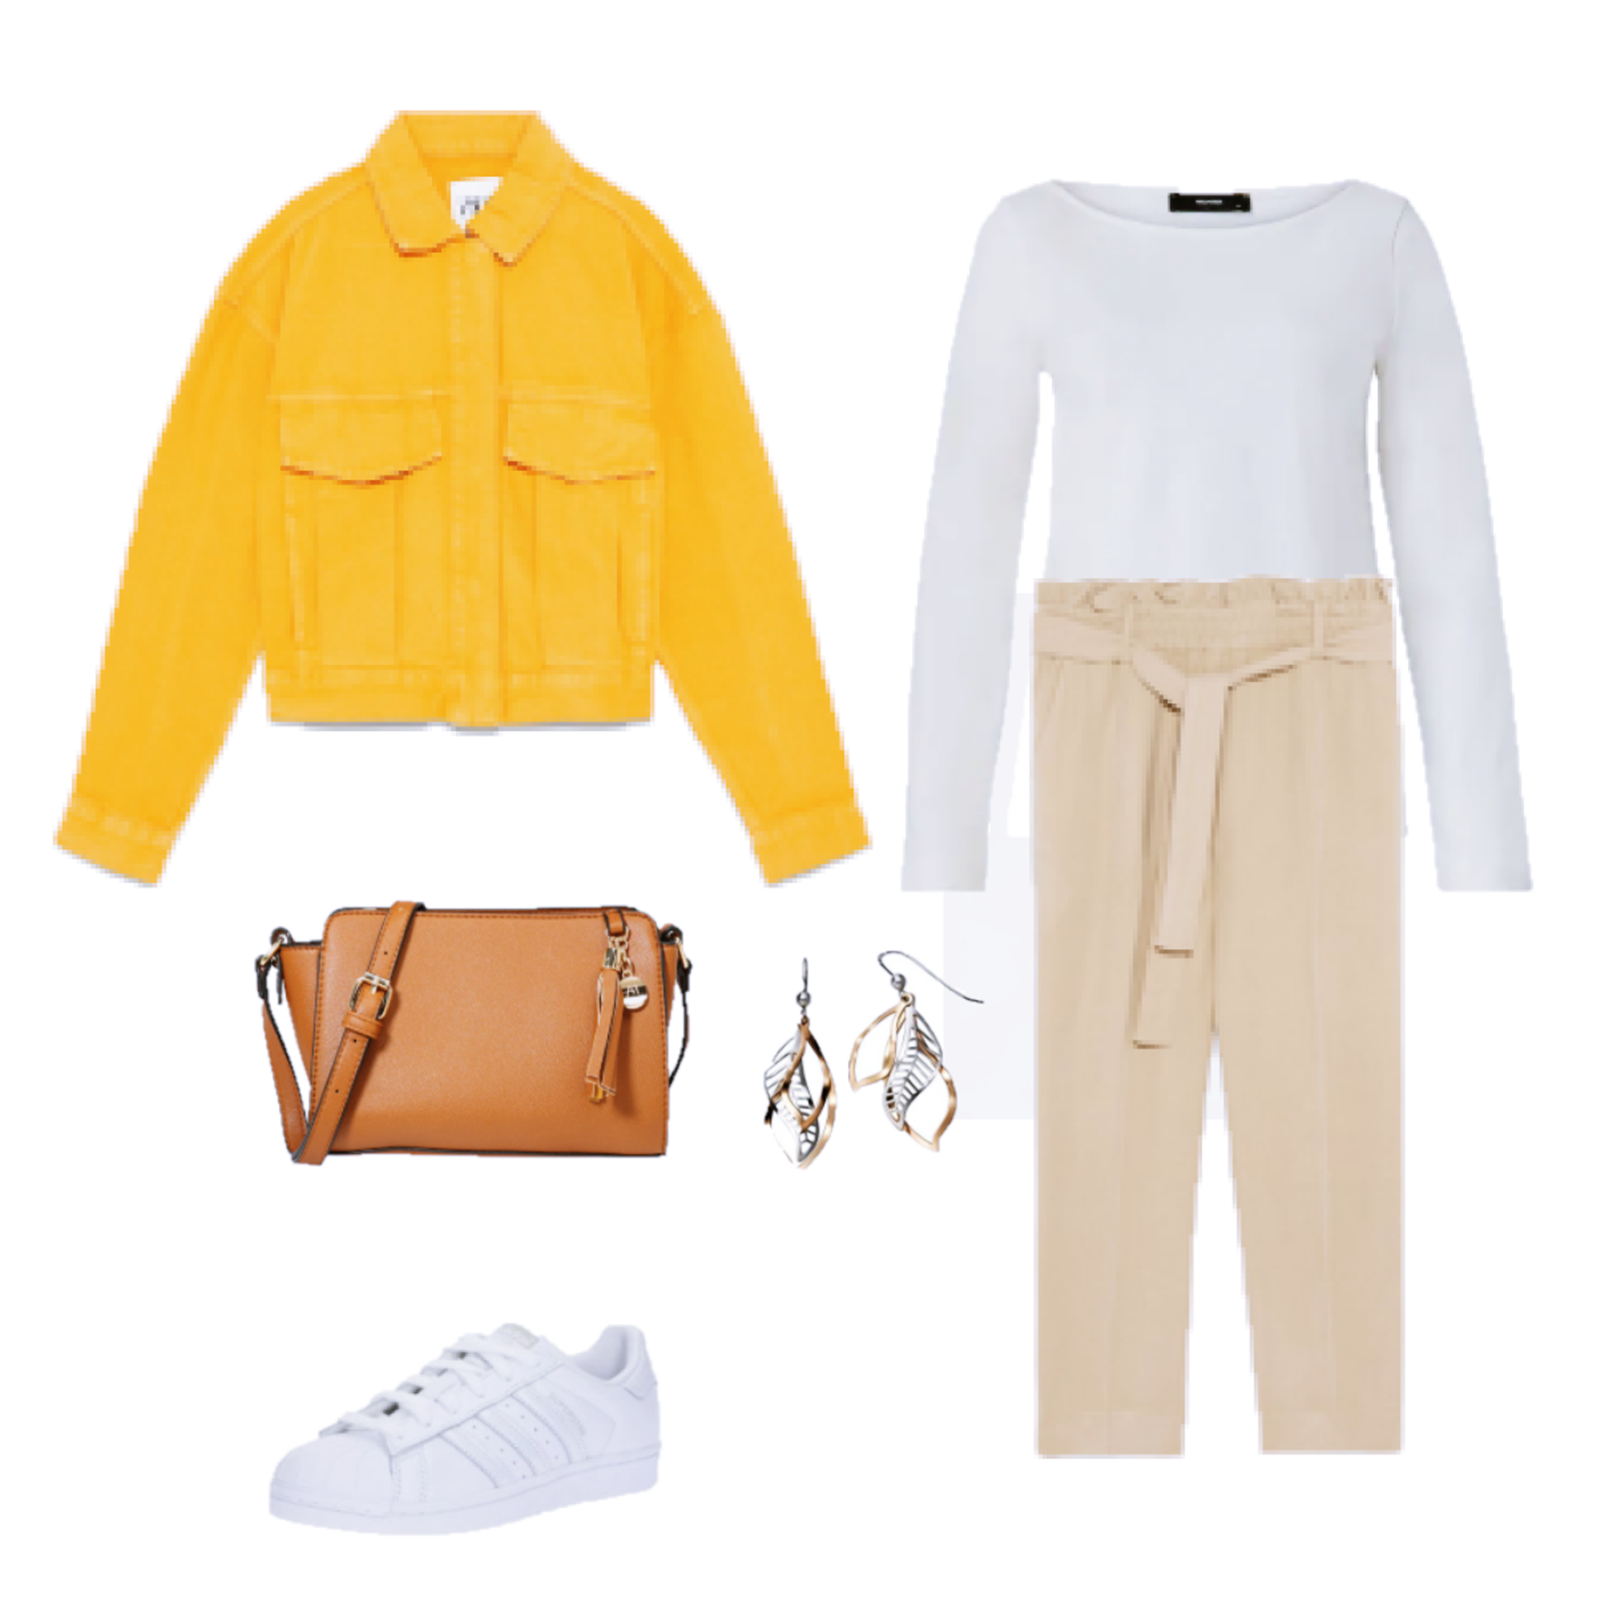 Outfit of the Day: A mustard jacket